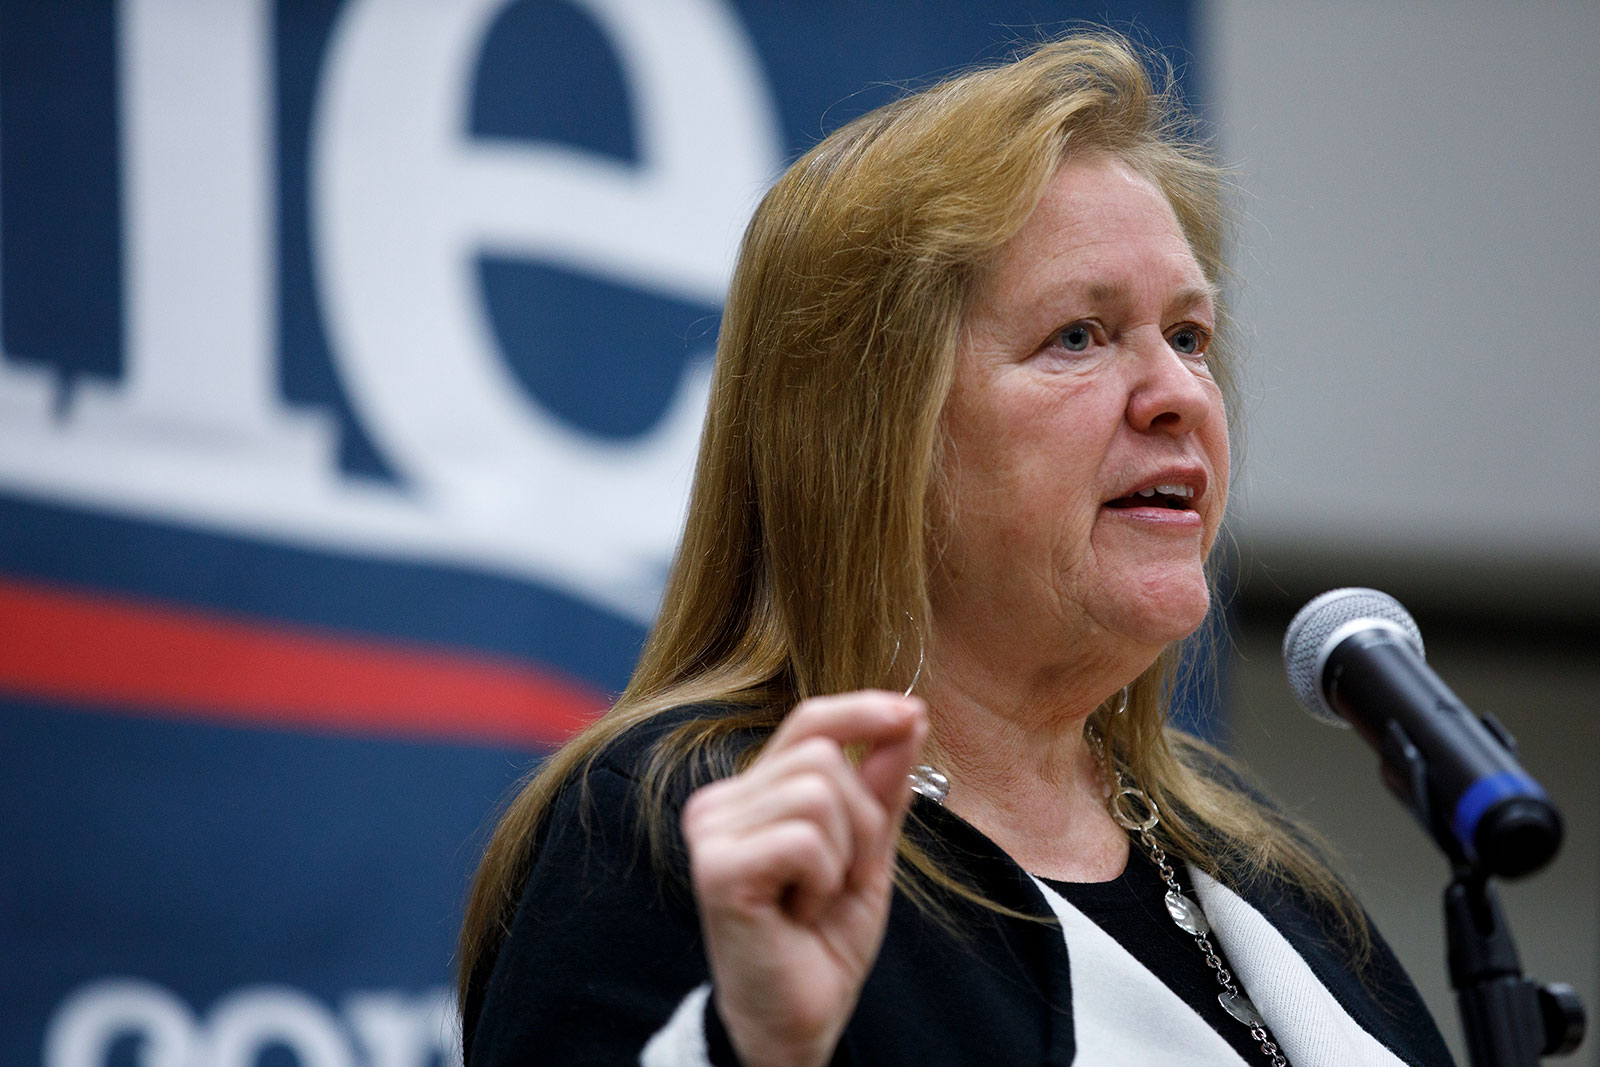 Jane Sanders speaks during a campaign event in Creston, Iowa, on January 31.